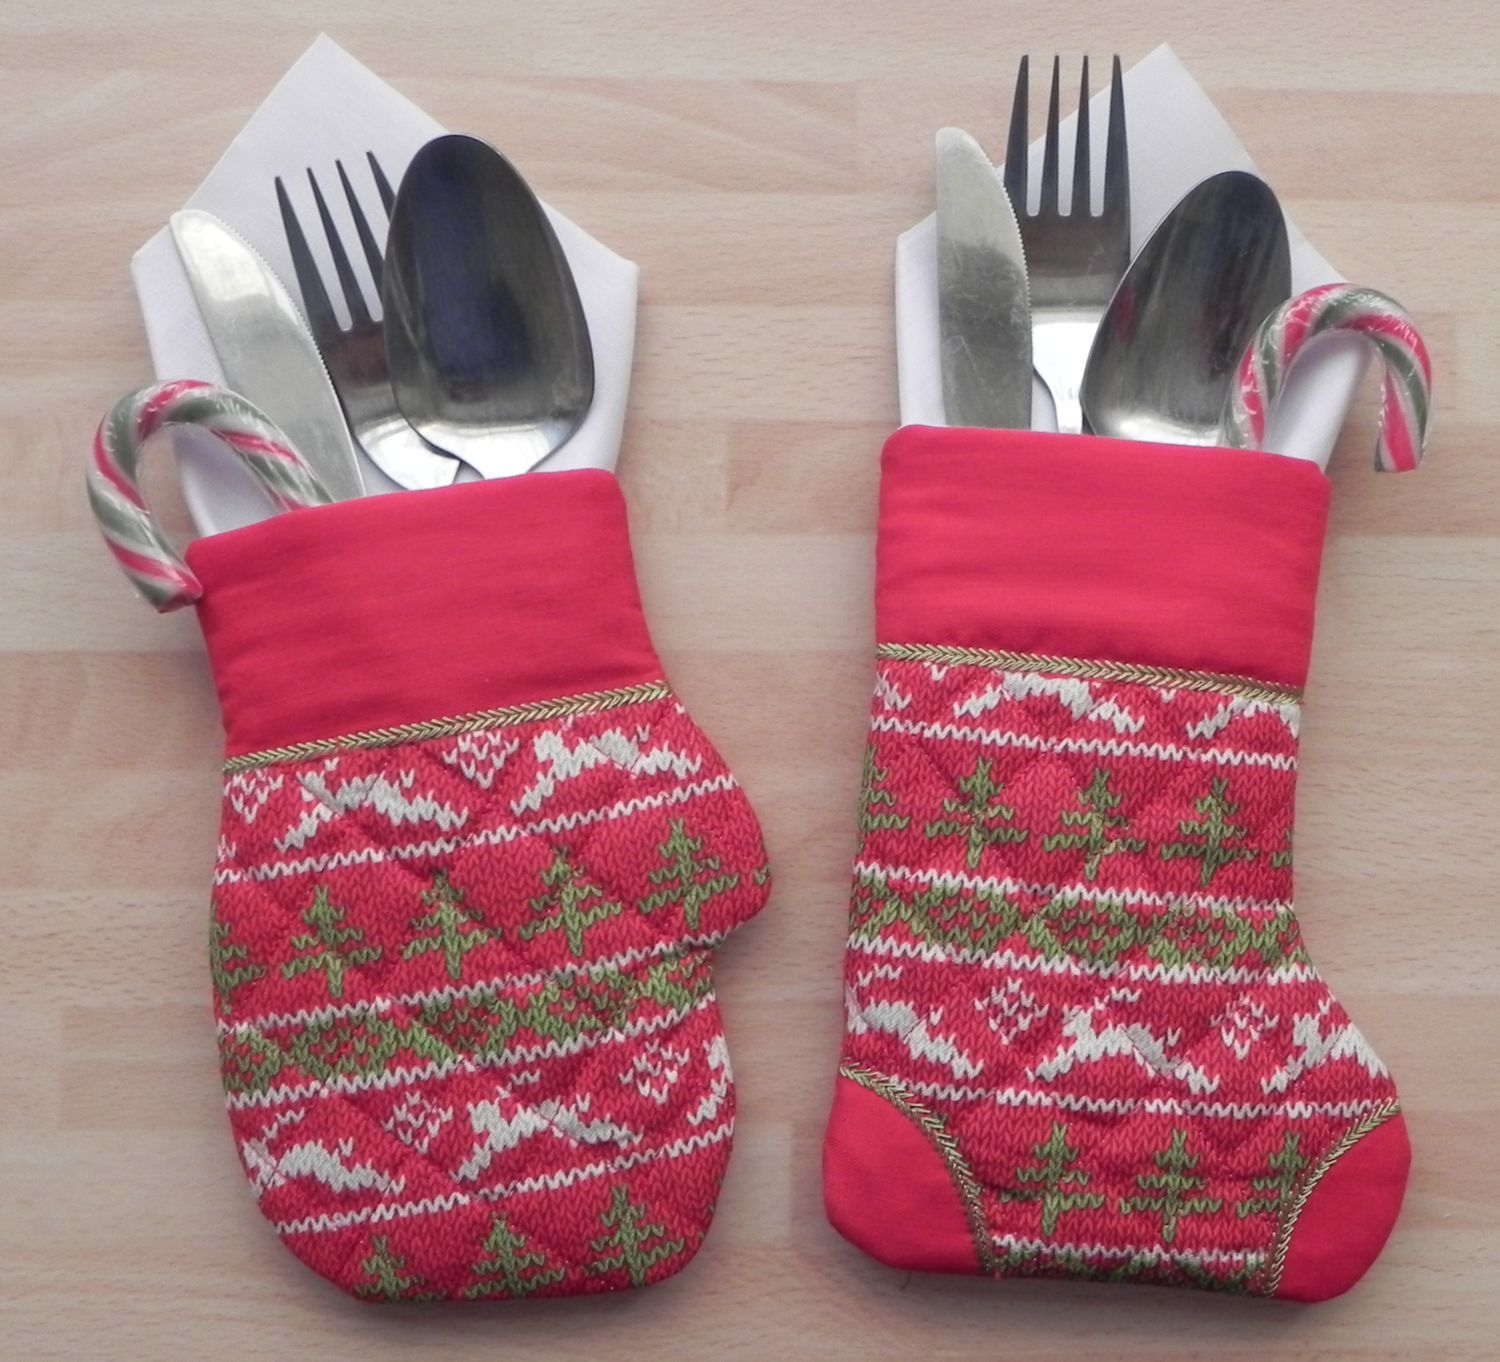 Cutlery Christmas Stocking Knitting Pattern : Free Embroidery Designs, Cute Embroidery Designs